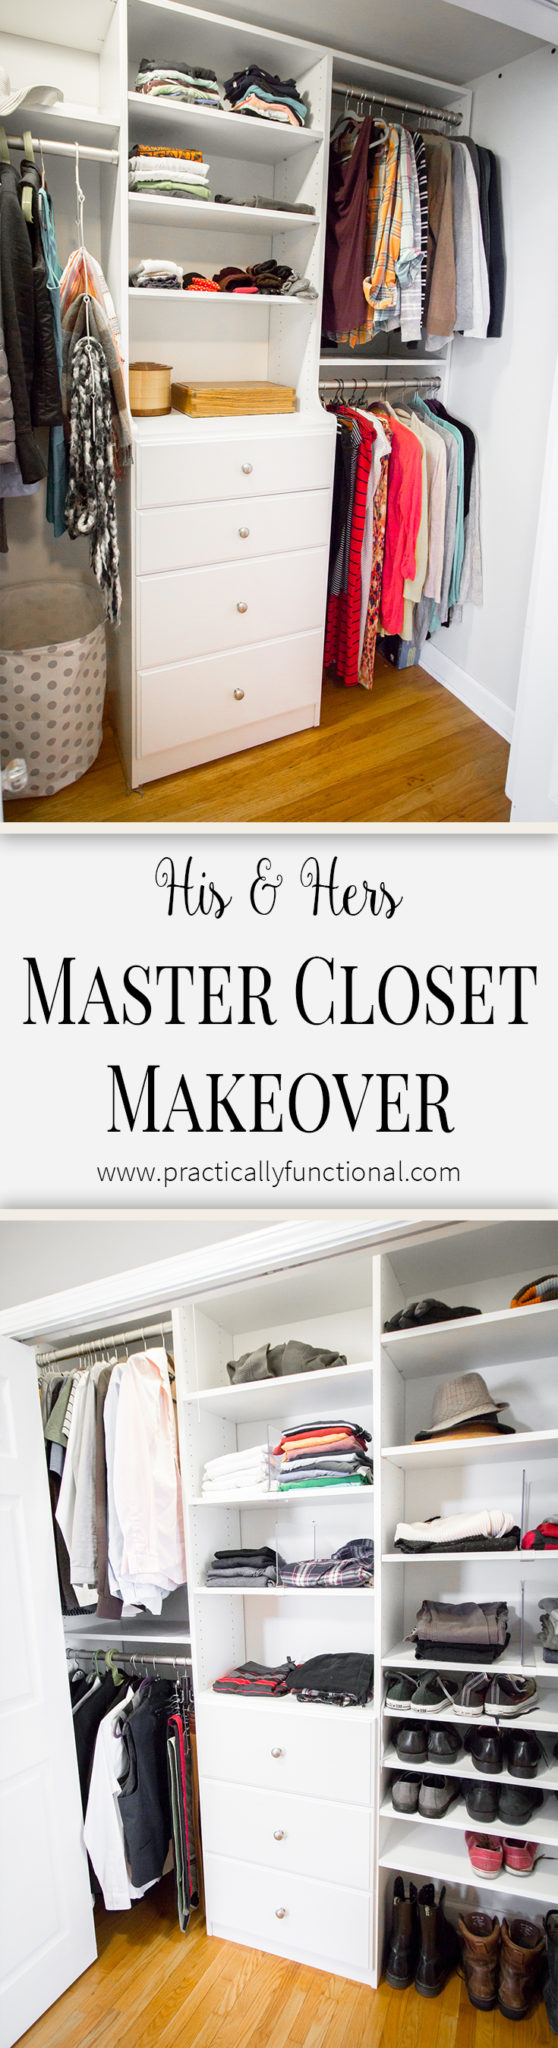 His and hers master closet makeovers! You have to see the before photos!